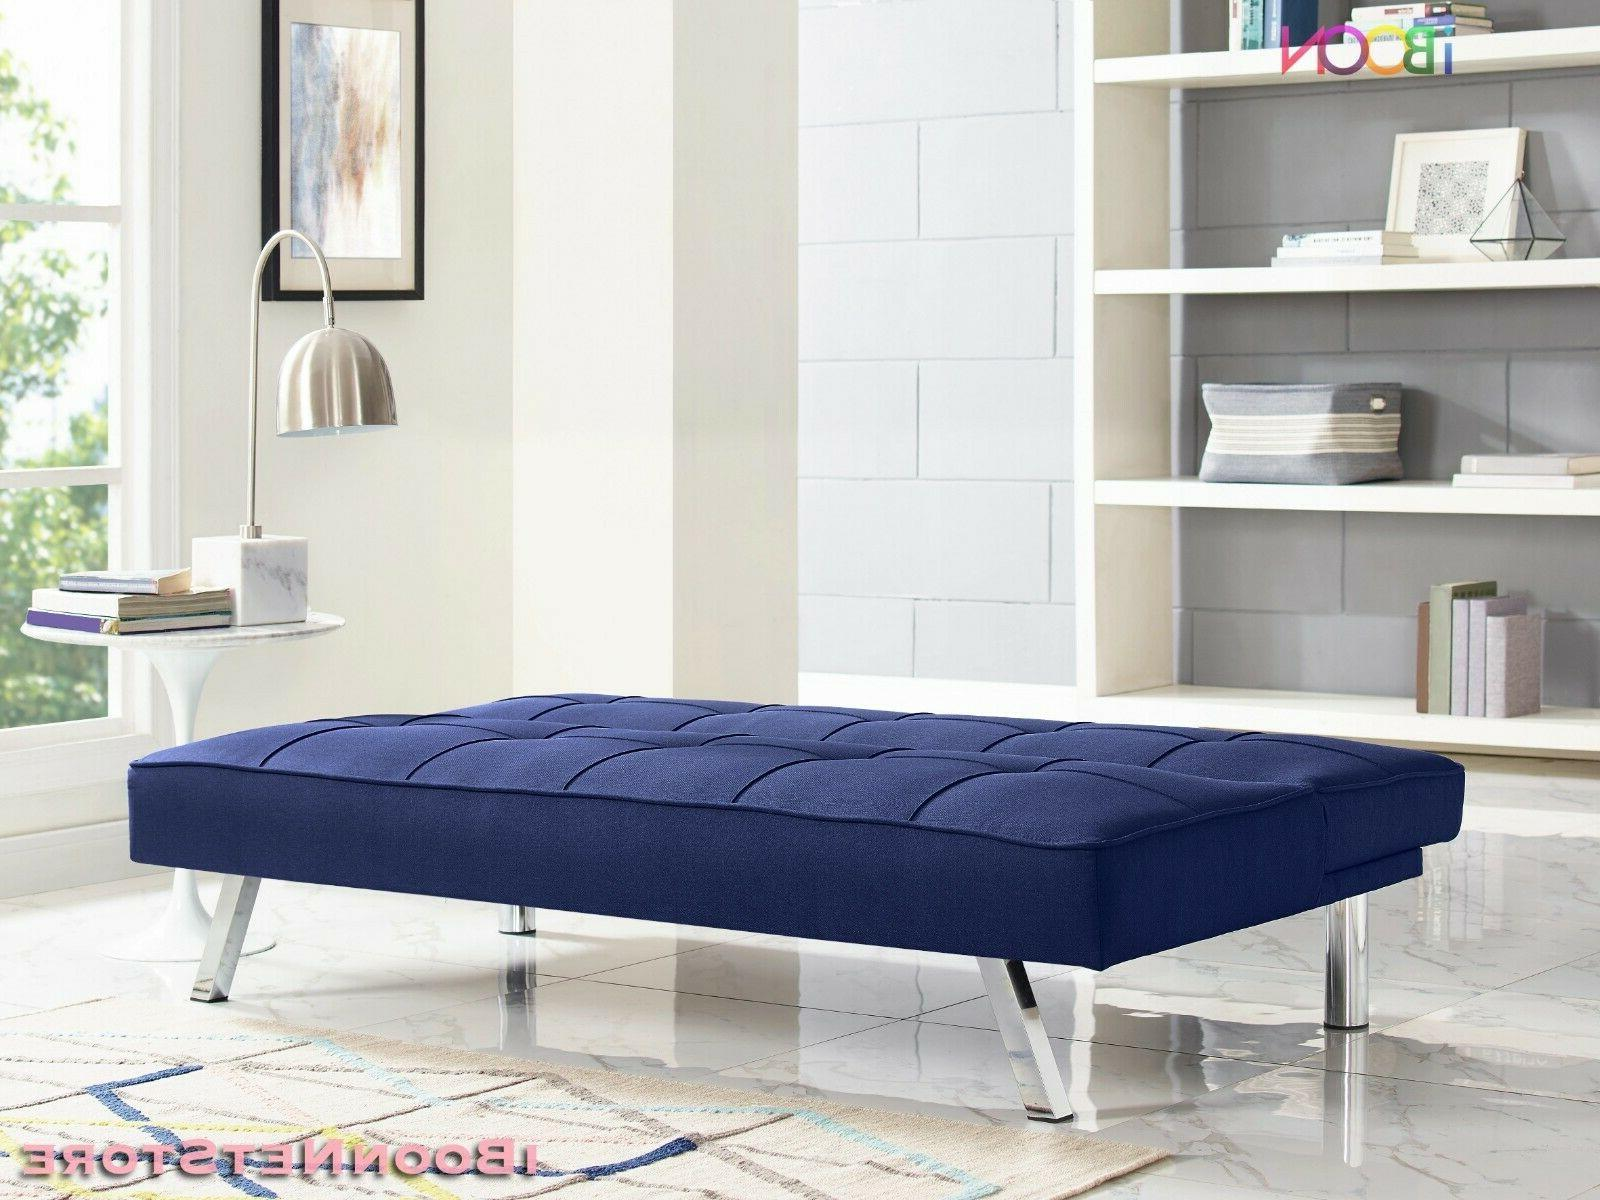 Futon Sofa Bed Convertible Couch Foldable Mattress